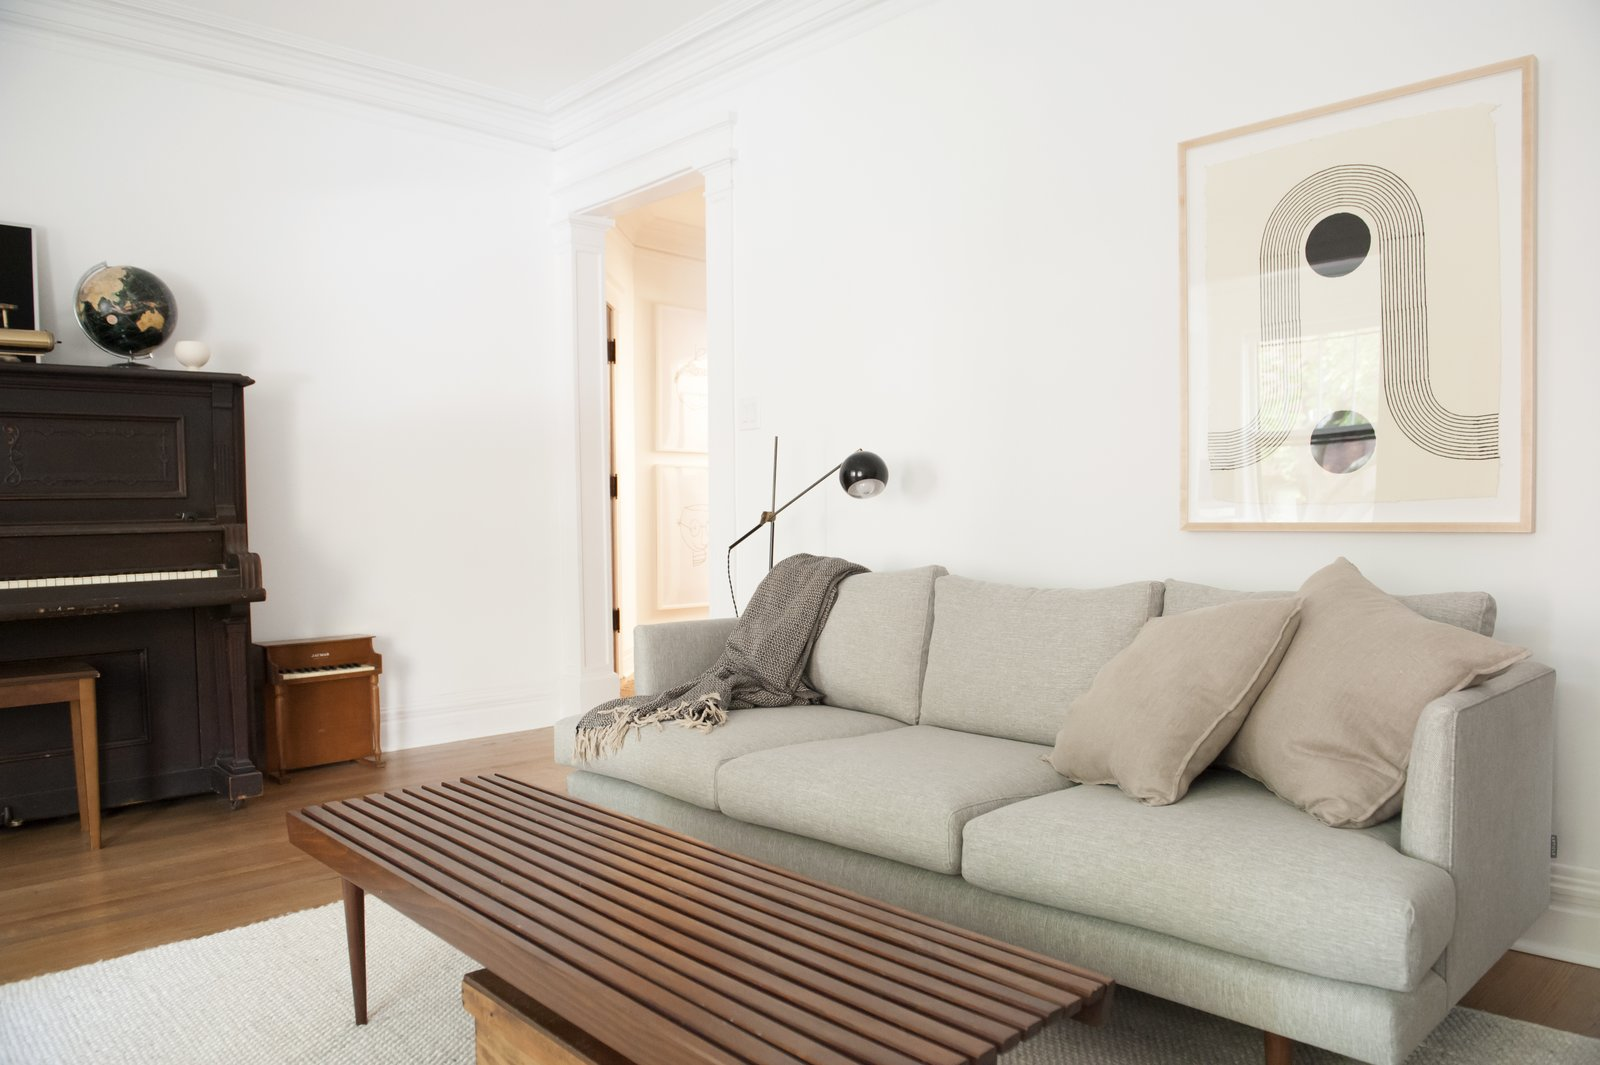 Living Room, Sofa, Coffee Tables, Floor Lighting, Medium Hardwood Floor, and Rug Floor  Best Photos from Simple and Beautiful Chicago Family Apartment